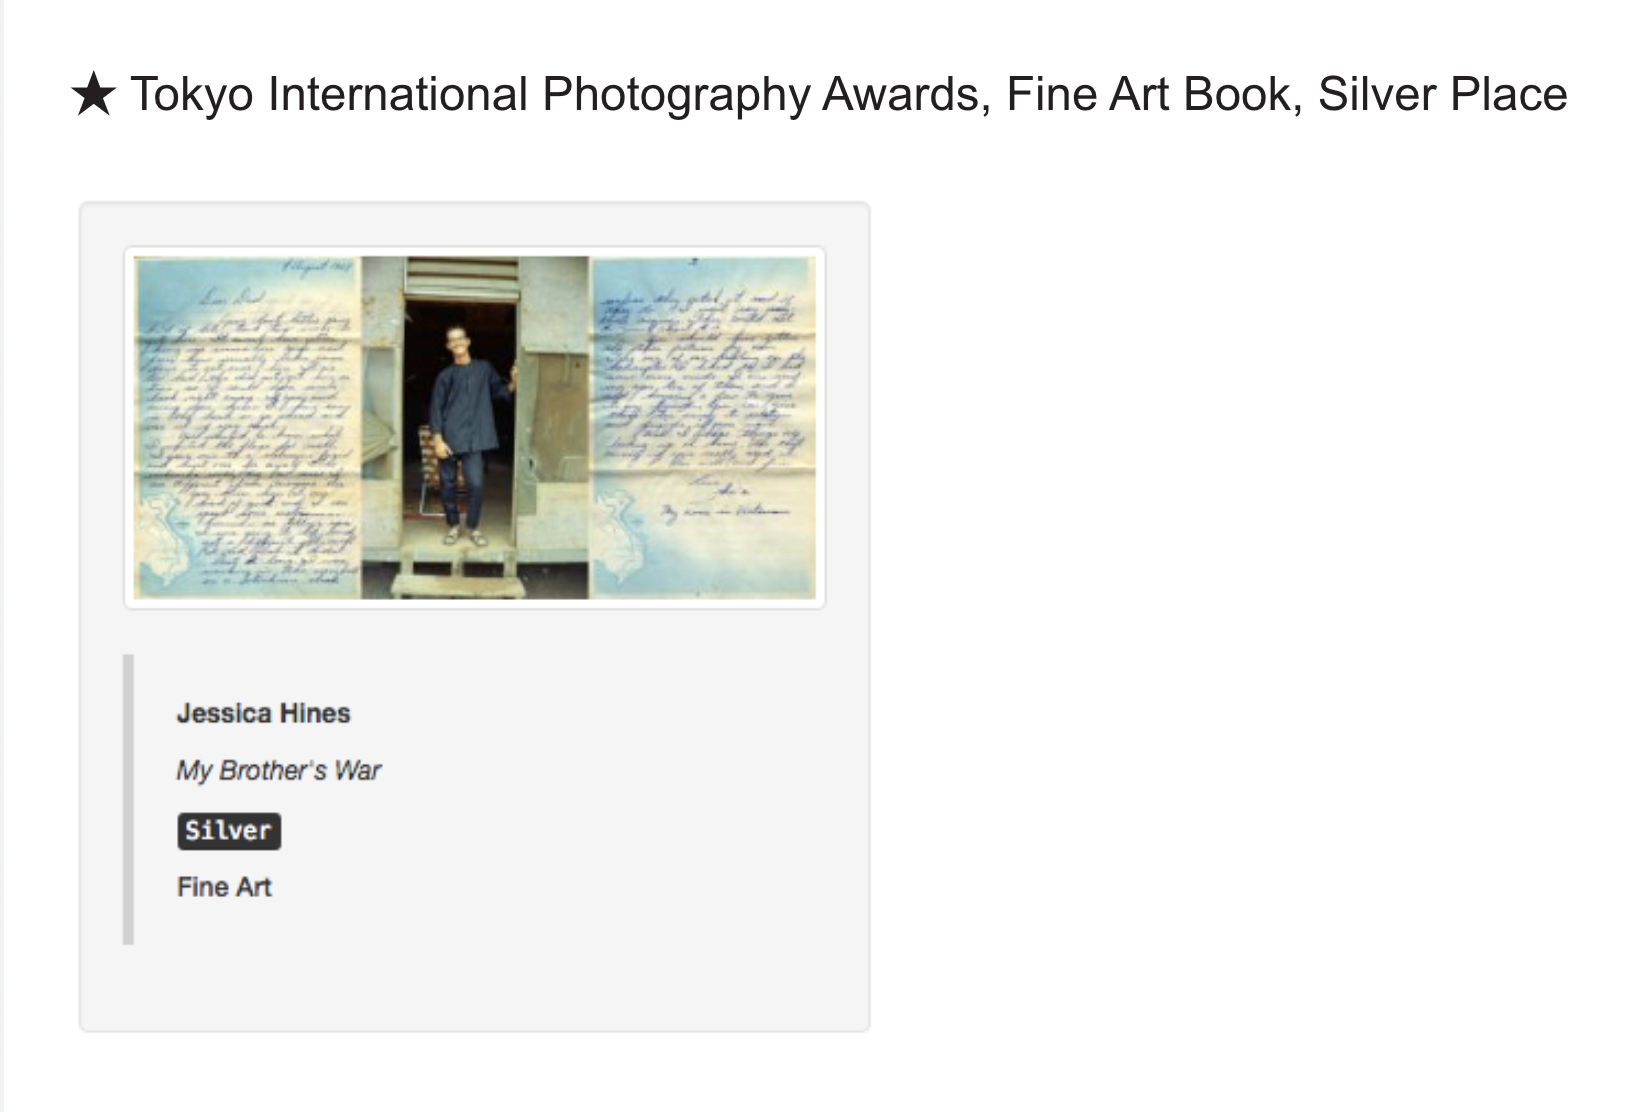 Tokyo International Photography Awards, Fine Art Book, Silver Place